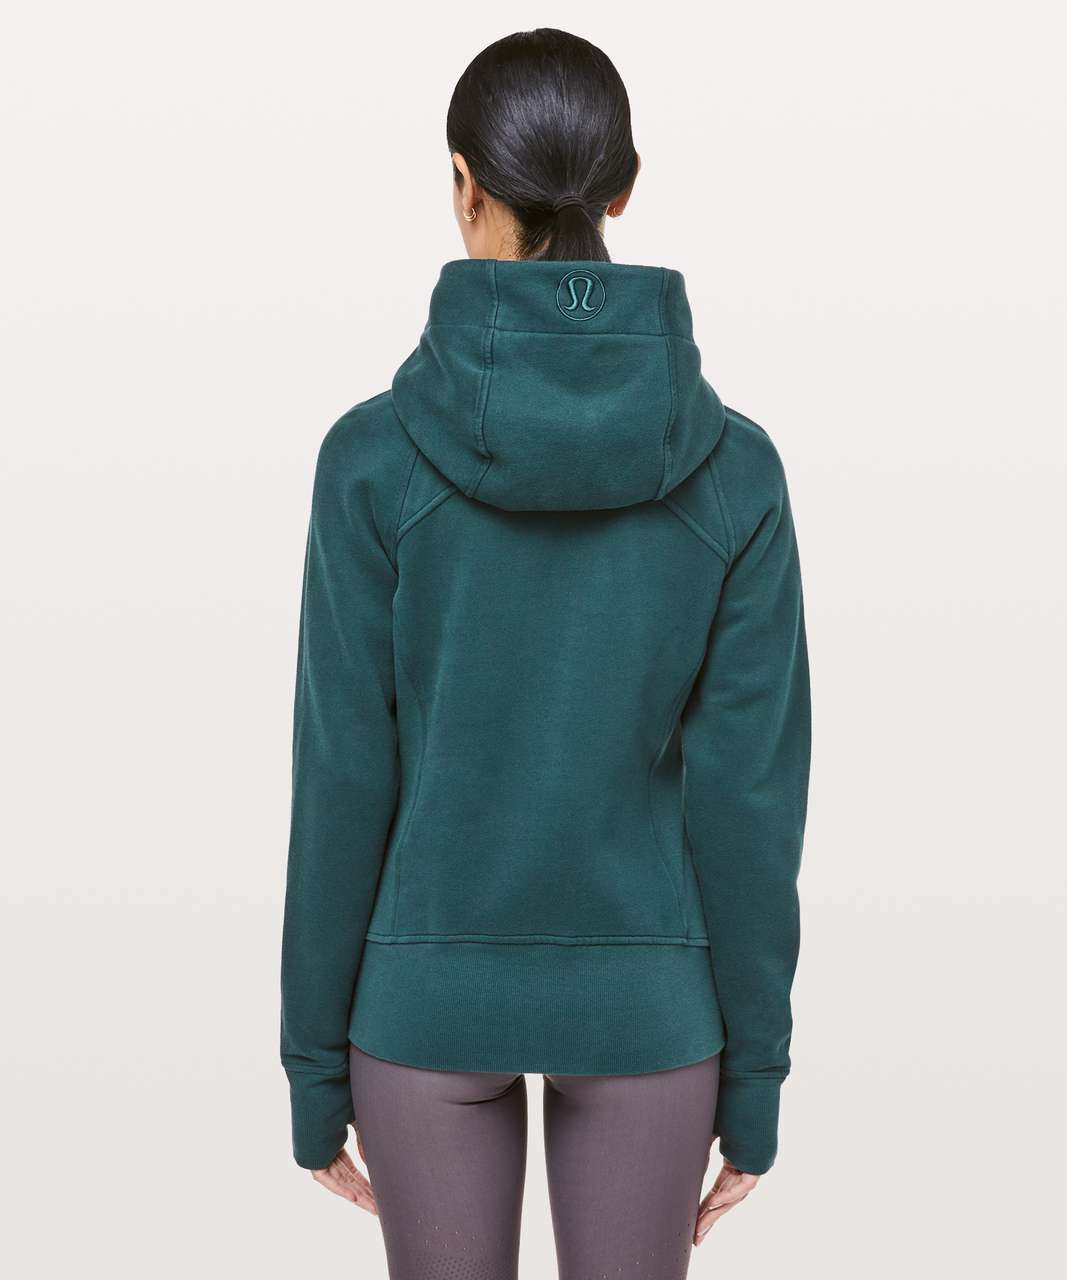 Lululemon Scuba Hoodie *Light Cotton Fleece - Submarine